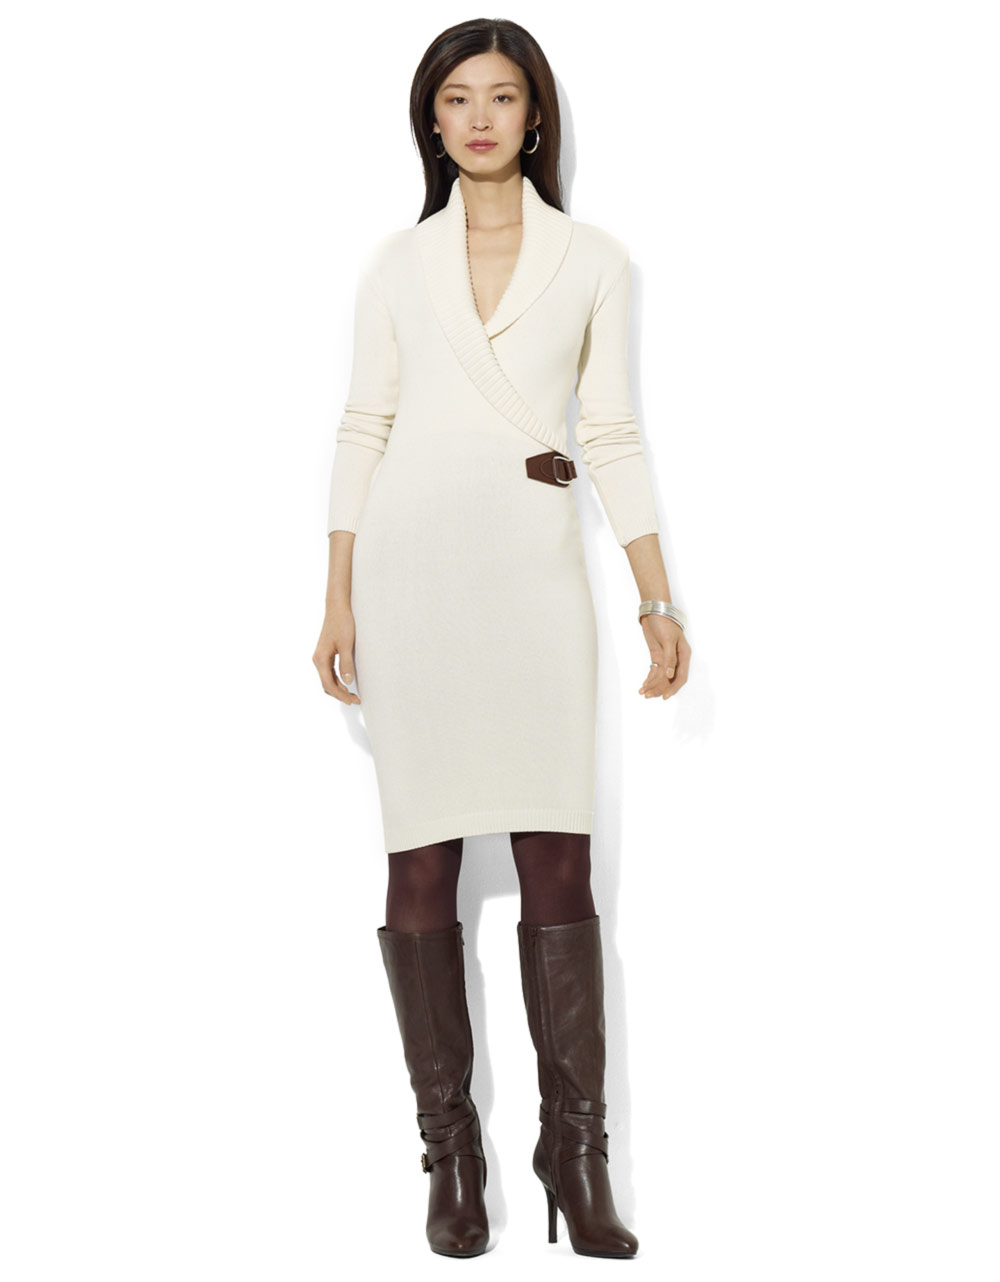 Calvin Klein Sweater Dress Ivory Shawl Collar Cable Knit Size Medim Buckle F1 See more like this. Custom Runway Women Shawl collar Dress Green Dresses Print Fashion Occident. Brand New · Unbranded. $ From China. Buy It Now +$ shipping. 12% off. SPONSORED.